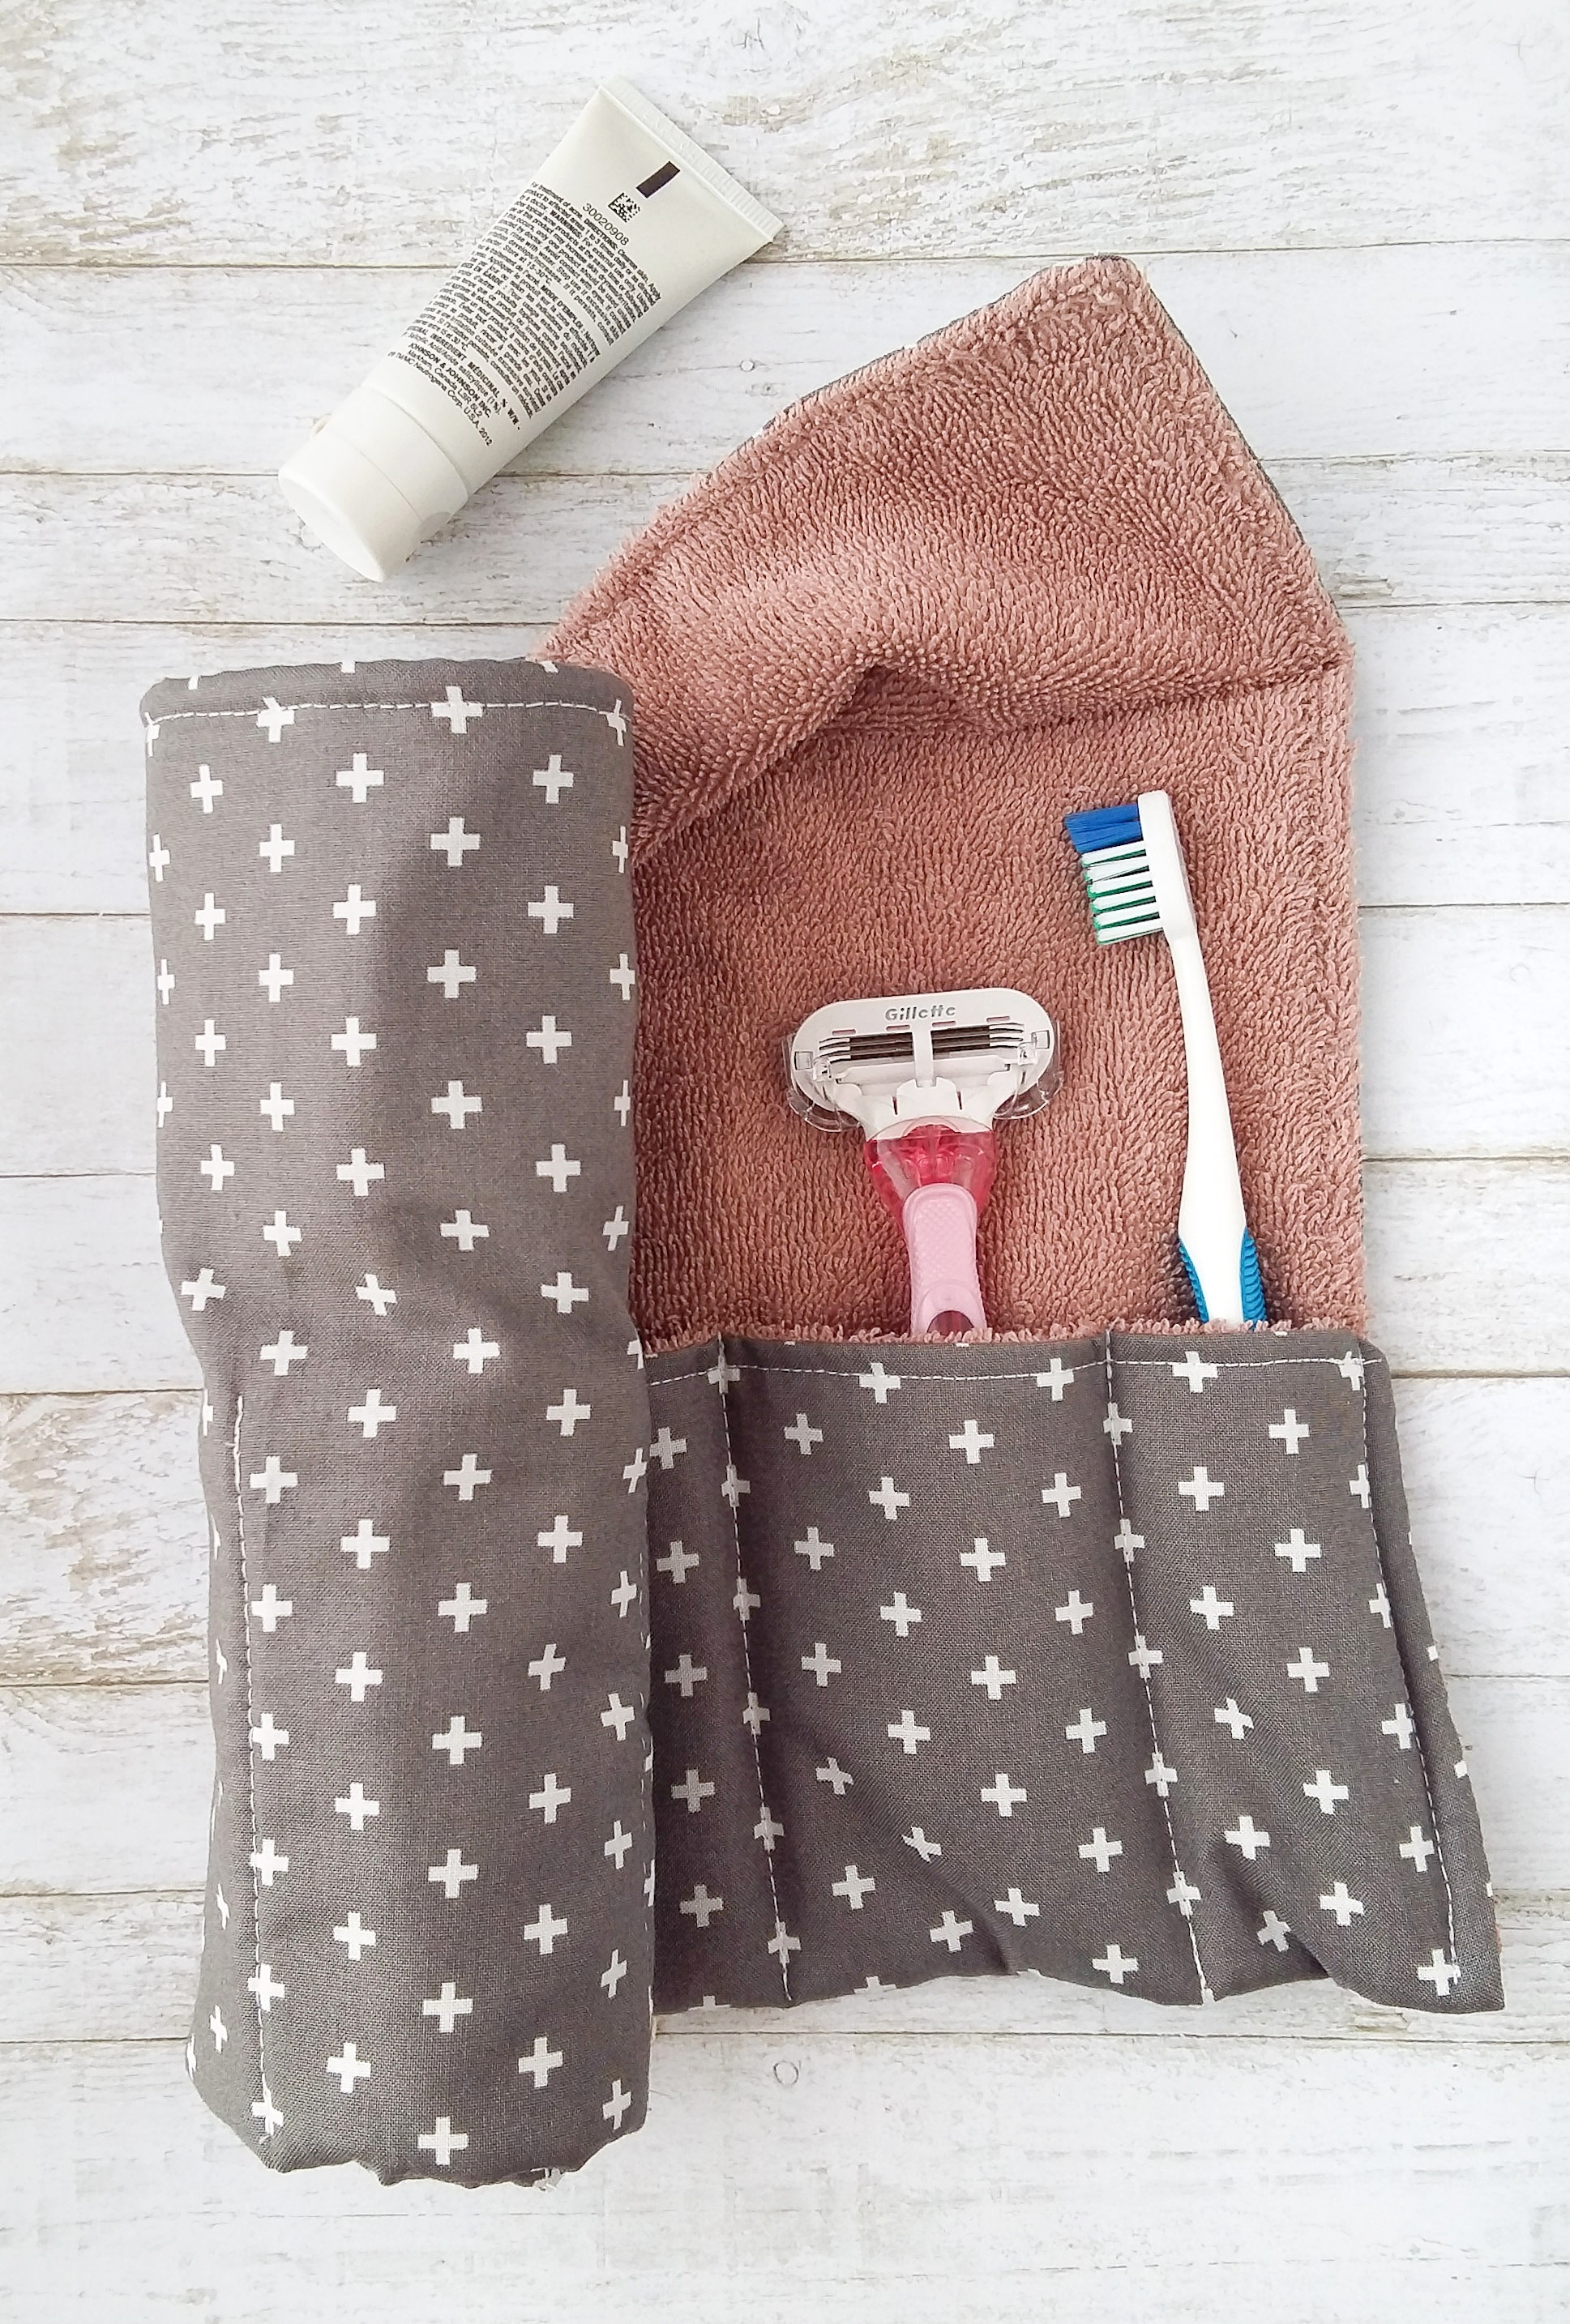 Travel in style with a DIY toiletry wrap!